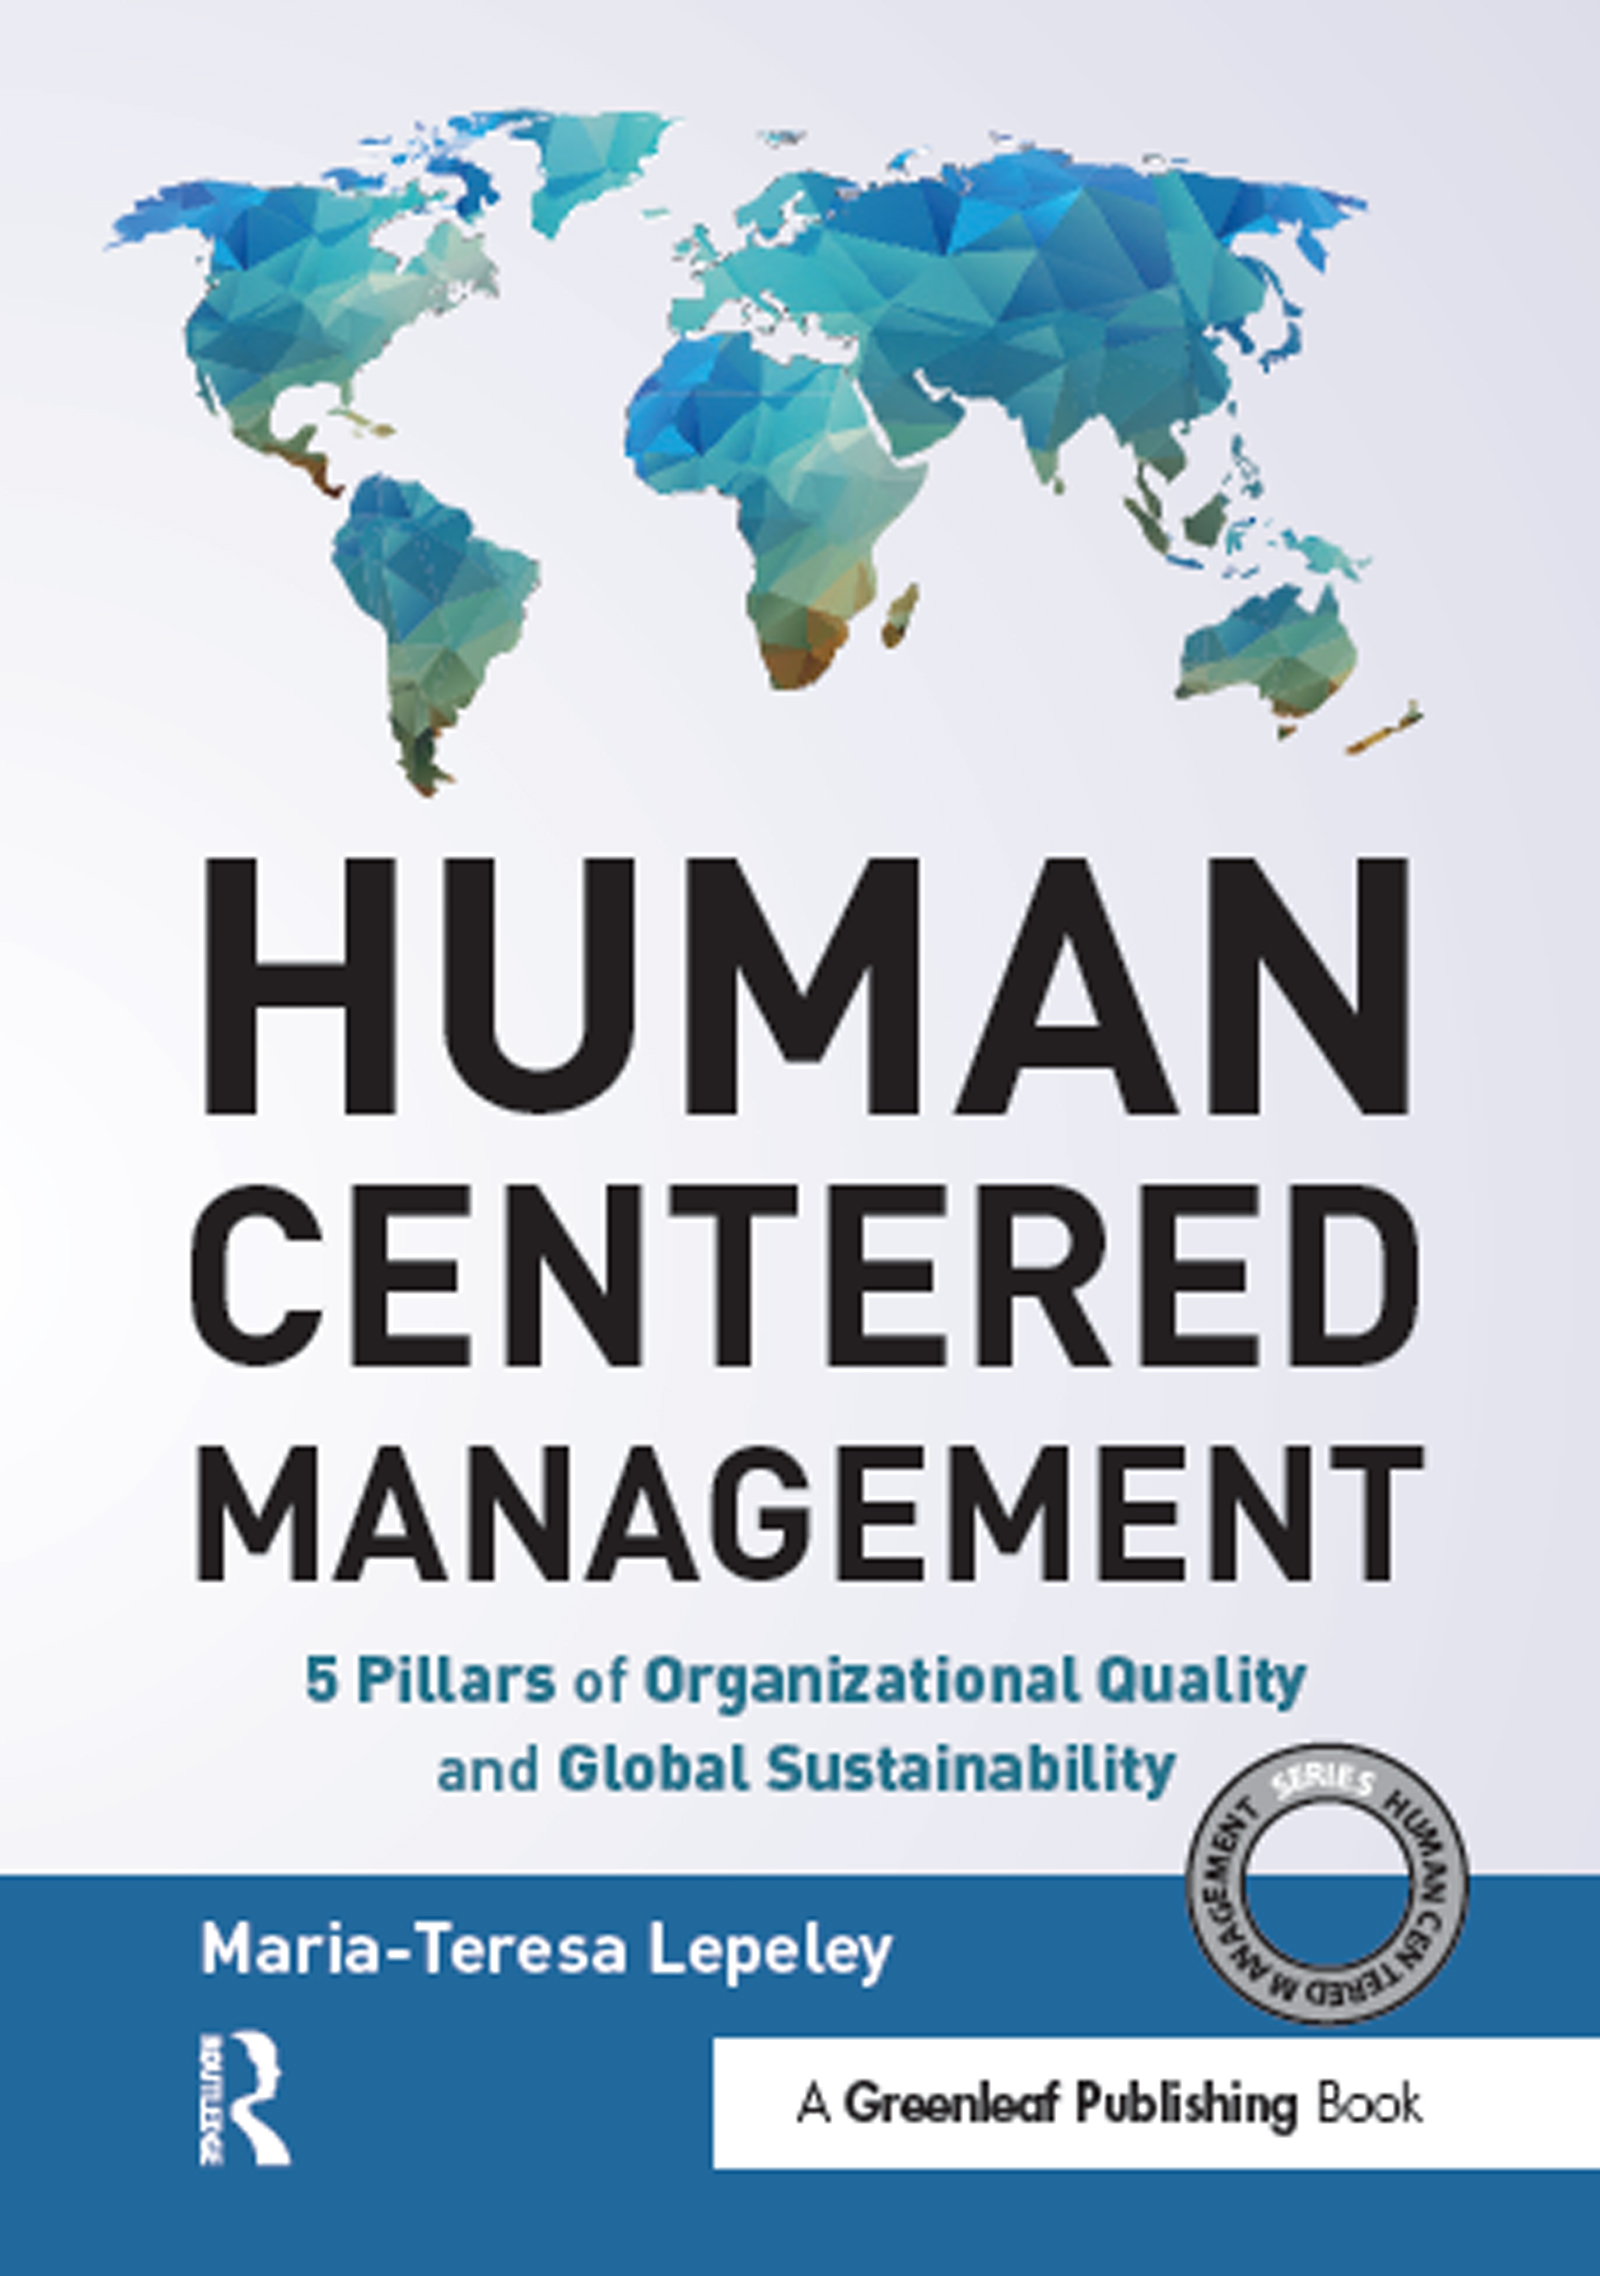 Human Centered Management: 5 Pillars of Organizational Quality and Global Sustainability, 1st Edition (Paperback) book cover